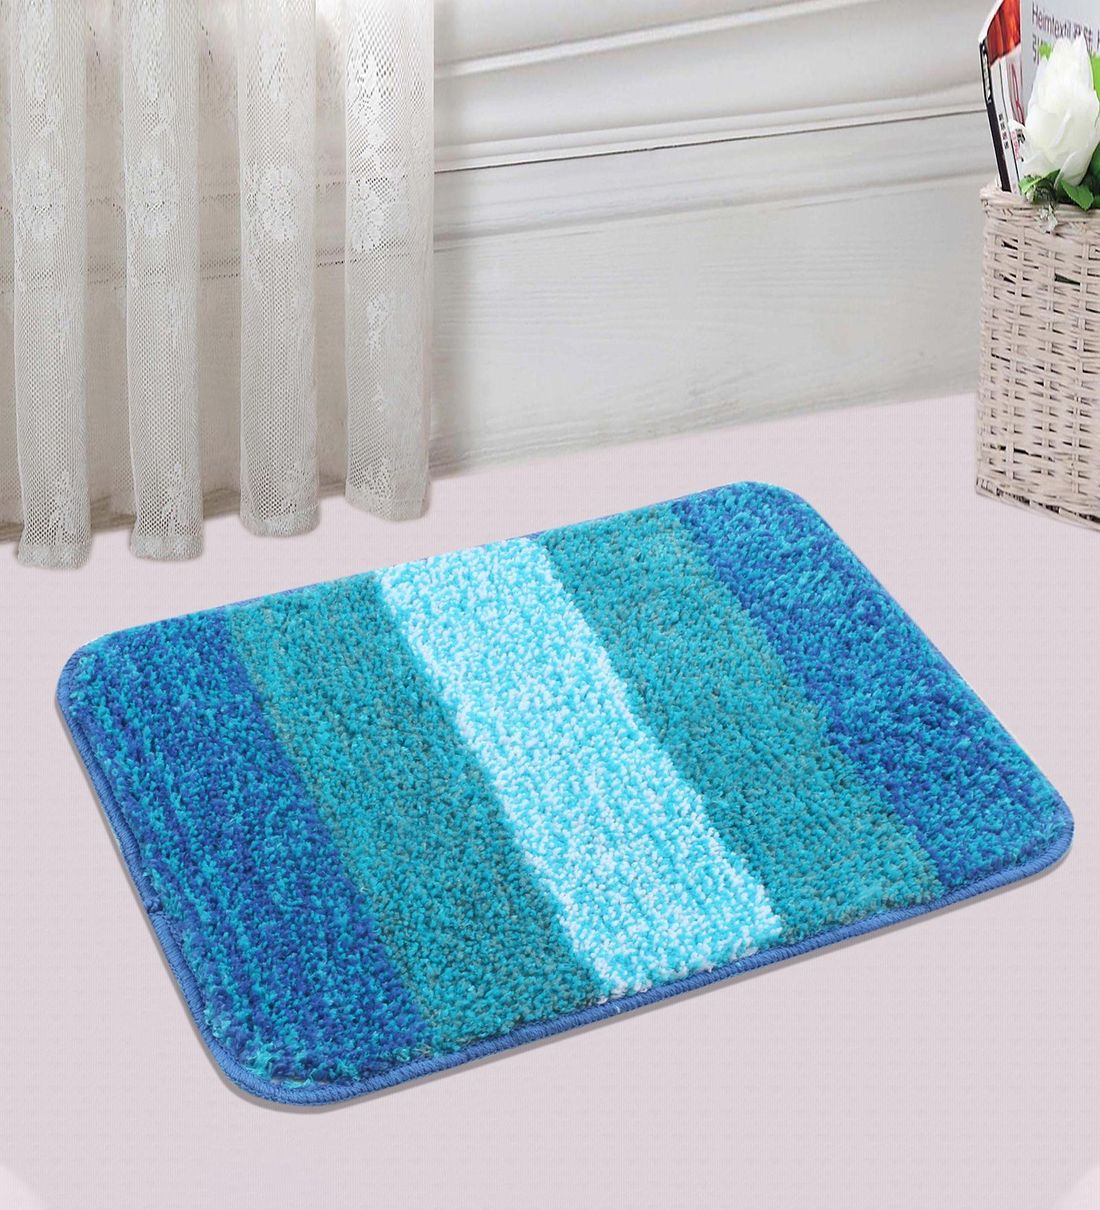 Buy Blue Microfibre Plain Solid 24x16 Inches Antiskid Bath Mat Set Of 2 By Saral Home Online Traditional Bath Mats Bath Mats Furnishings Pepperfry Product